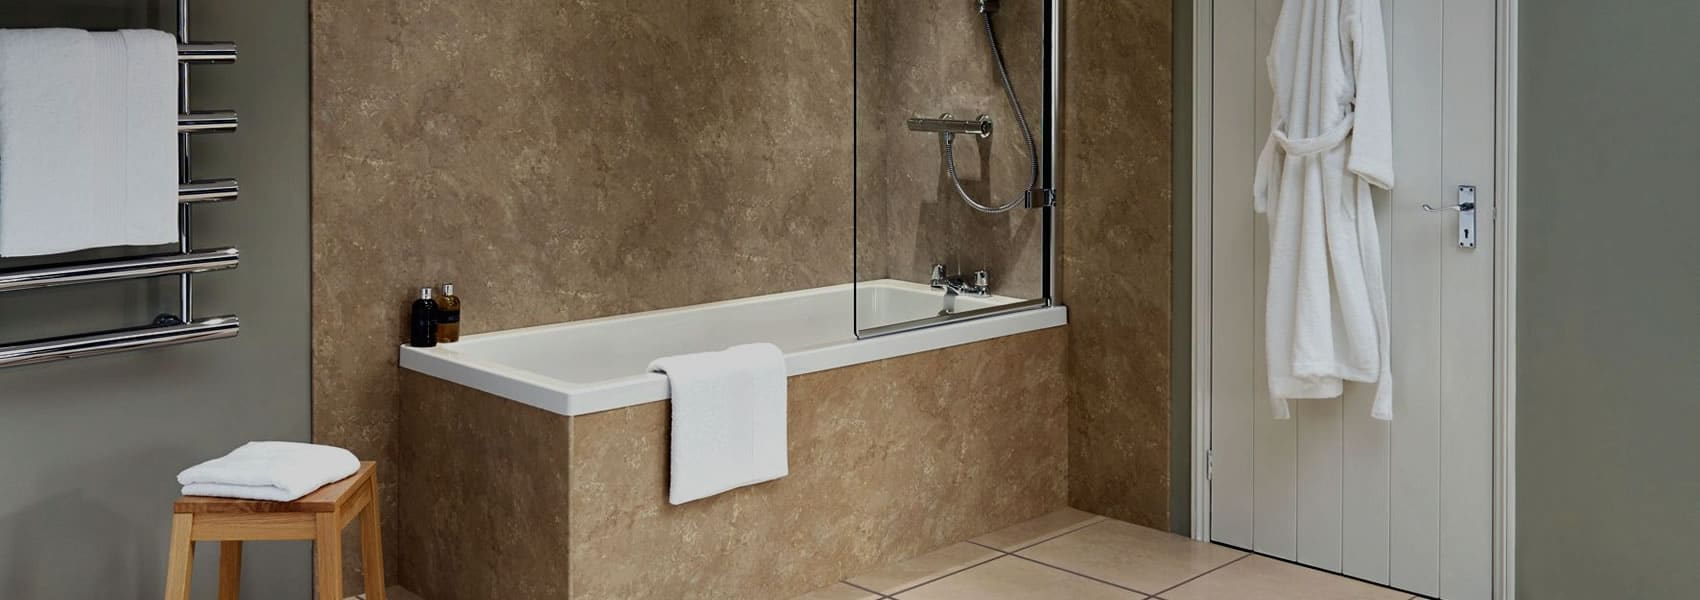 Waterproof bathroom panels uk - Take A Look At Our